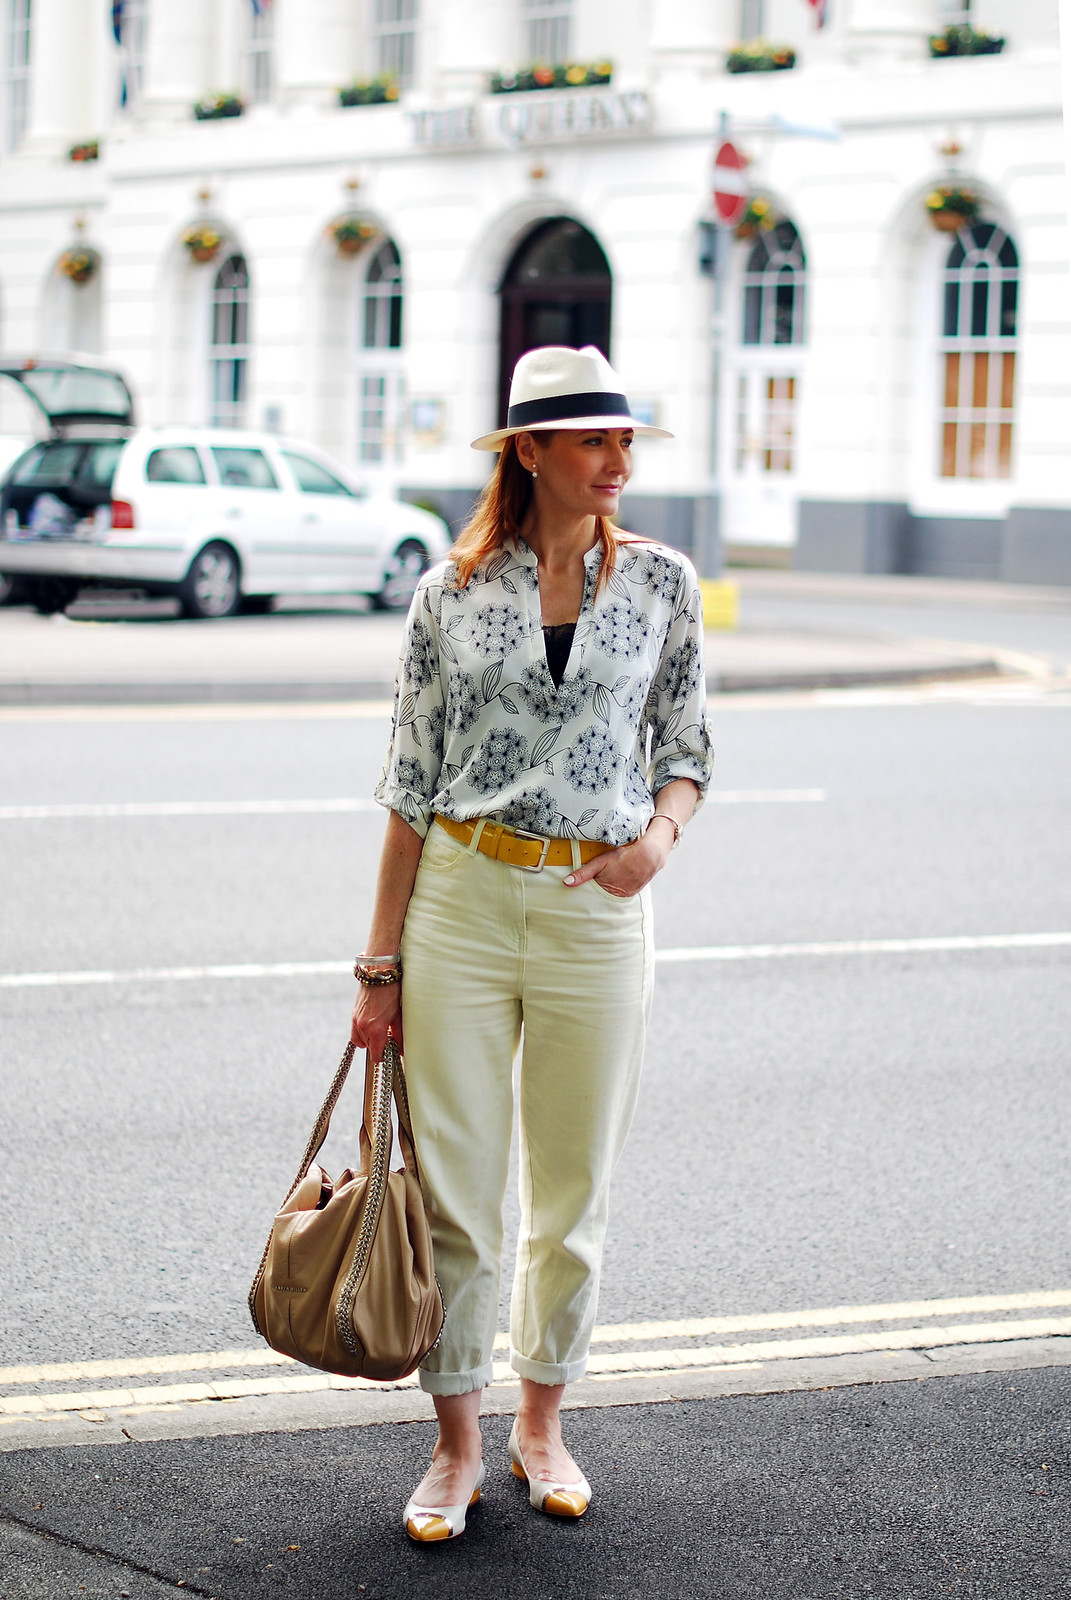 Weekend sightseeing outfit - boyfriend jeans & patterned blouse